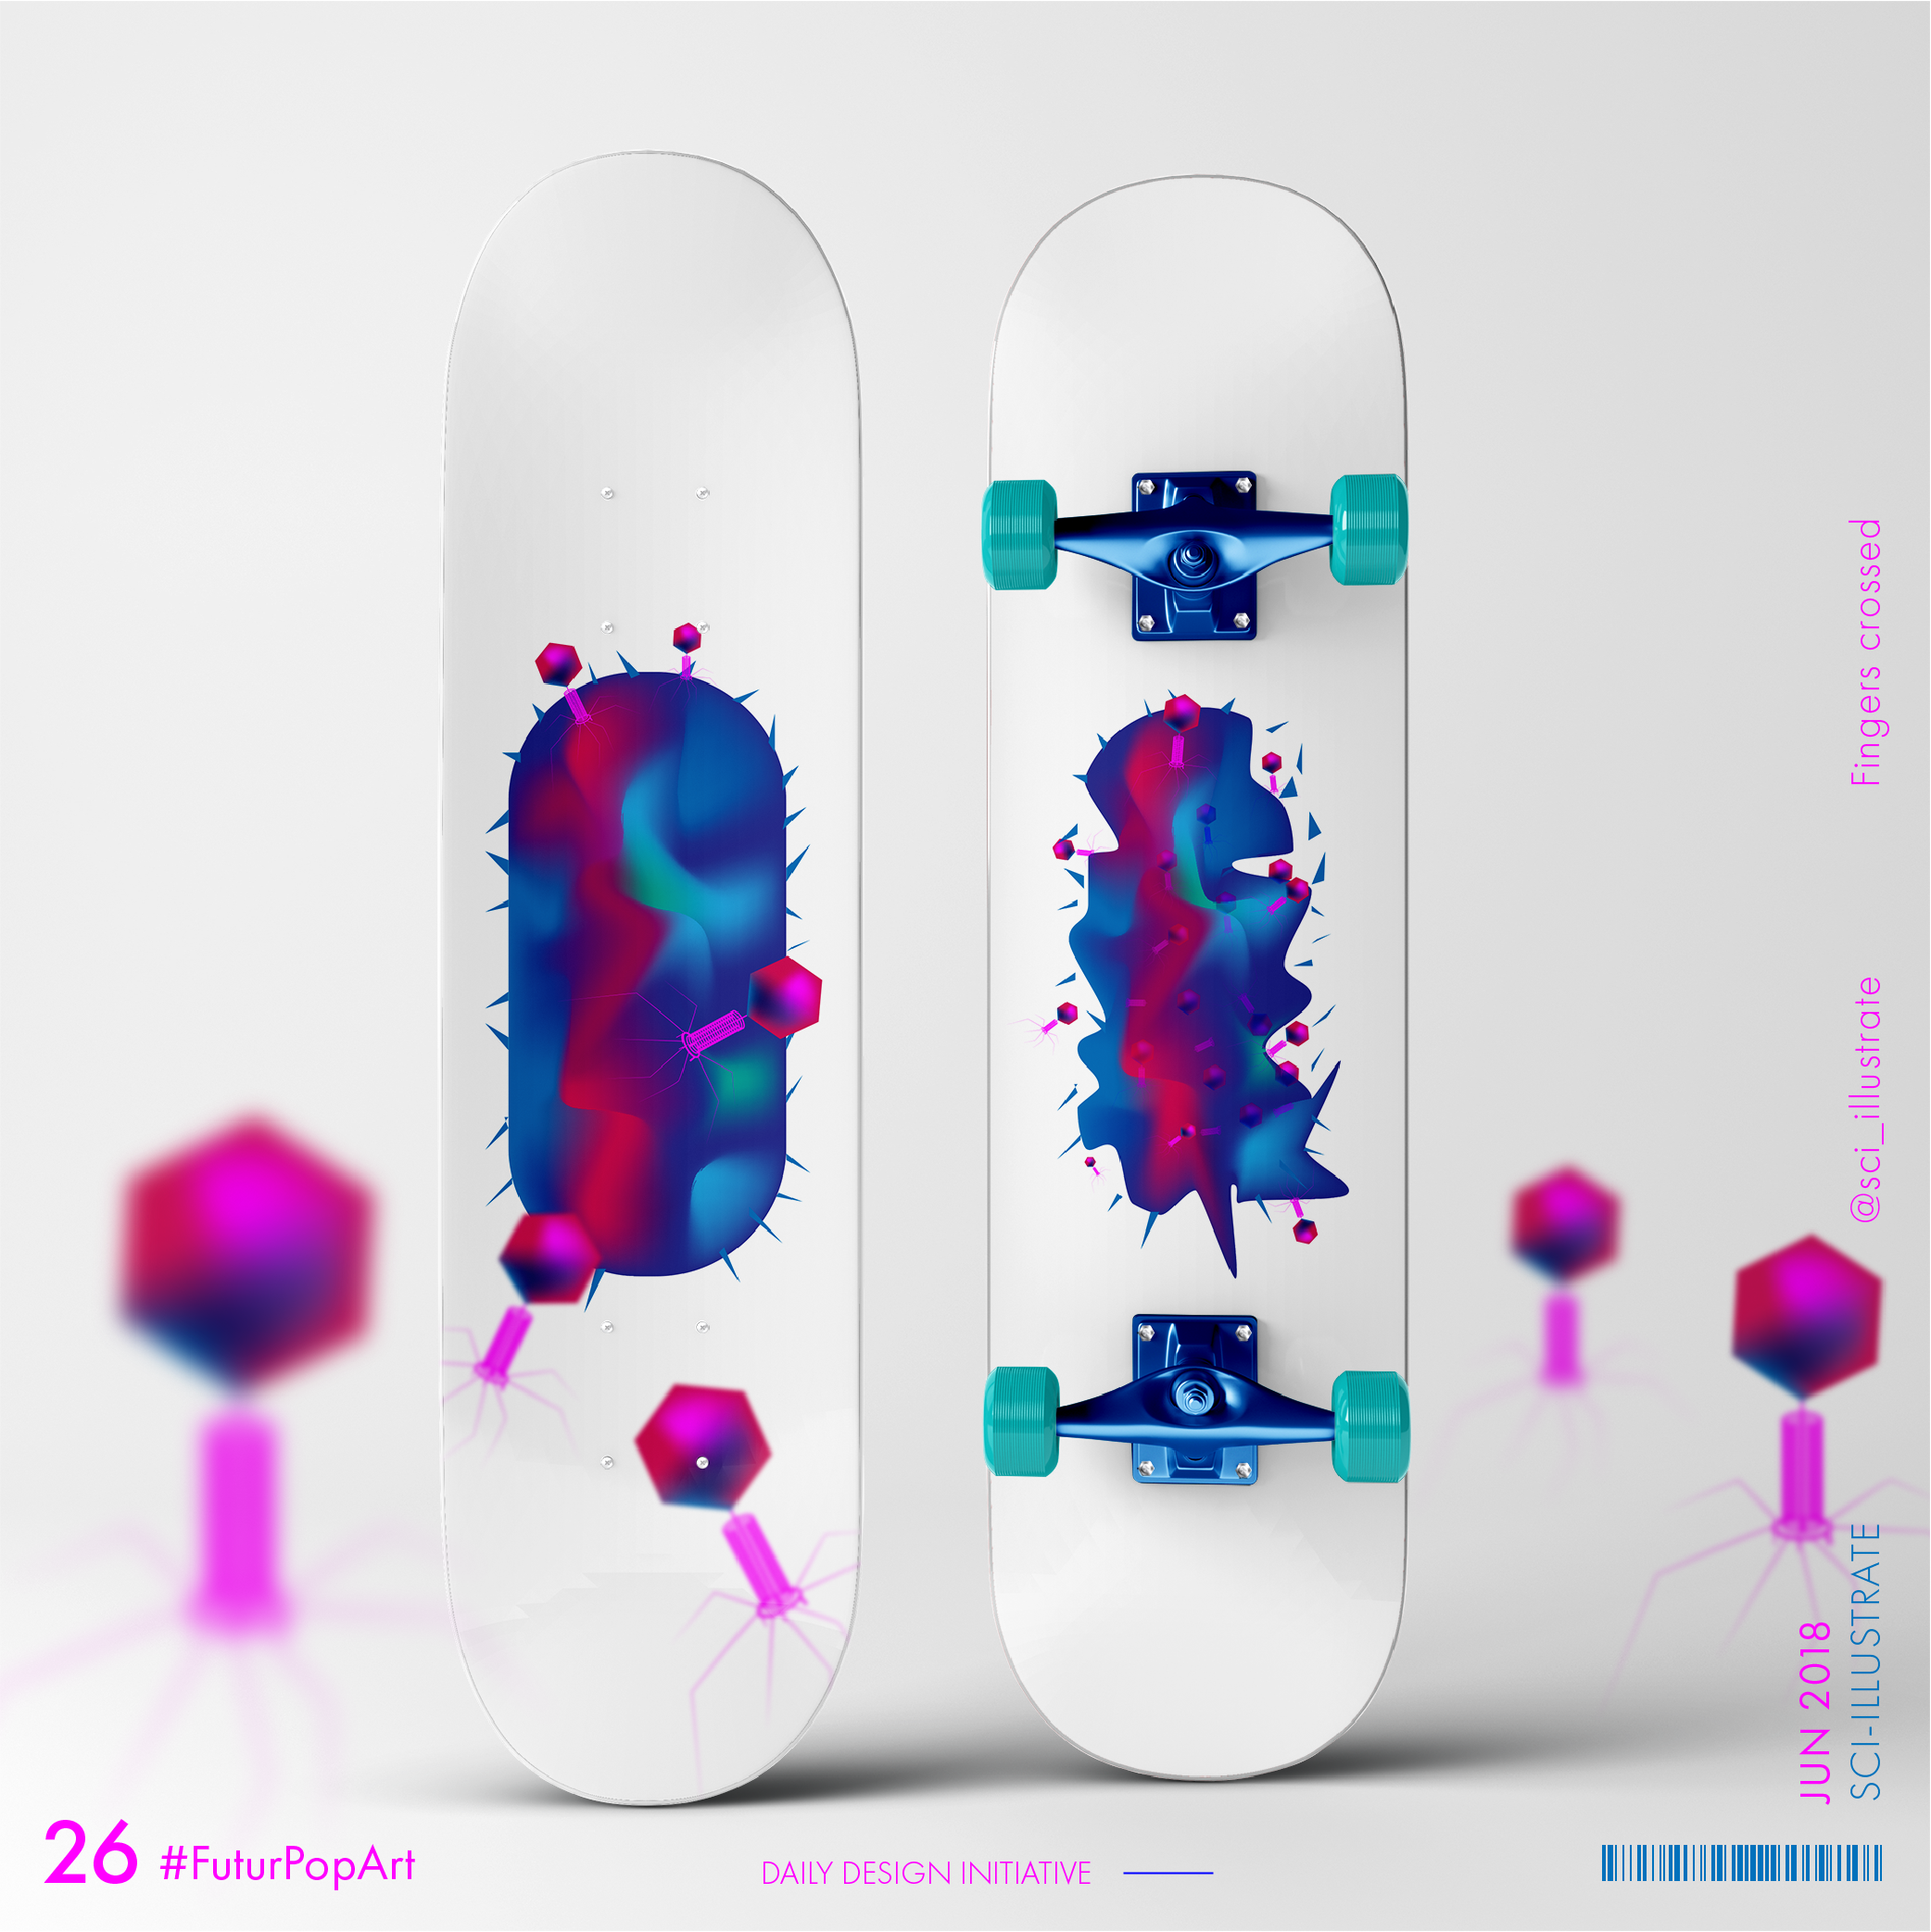 260618 sci-illustrate futurpopart-02.png